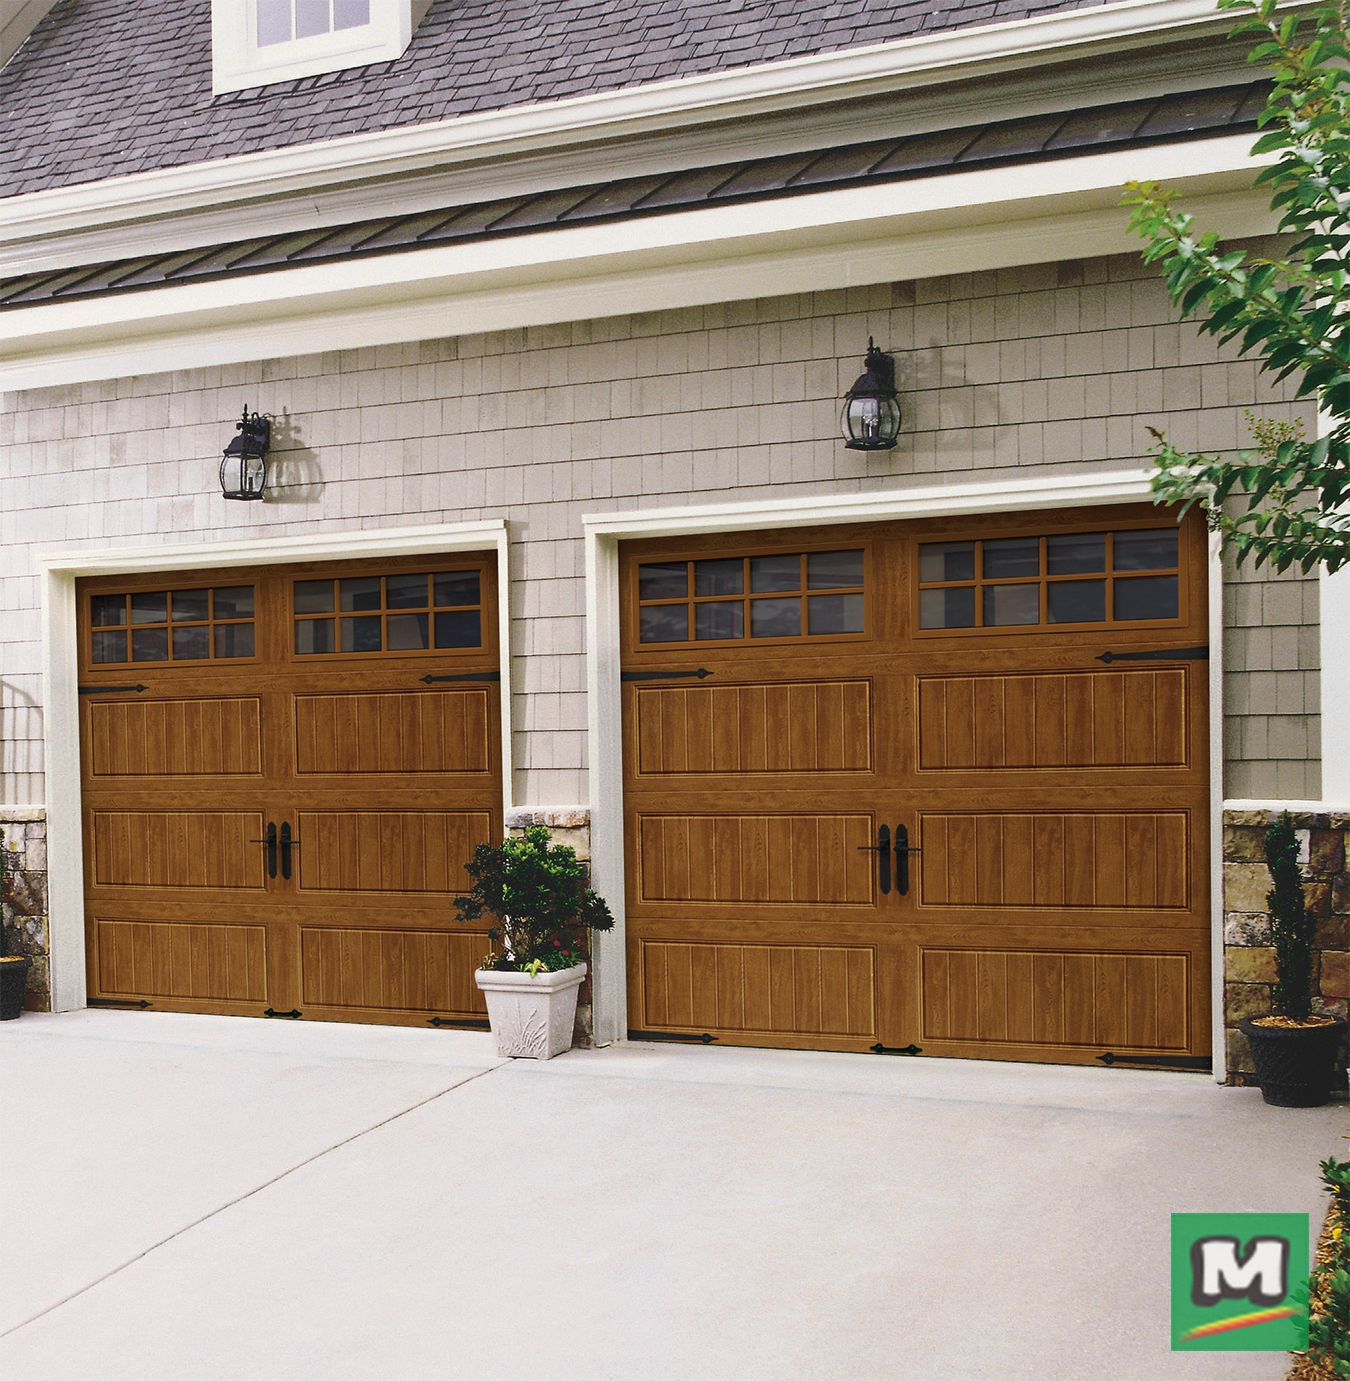 These Garage Doors From Ideal Door Offer Superior Insulation With